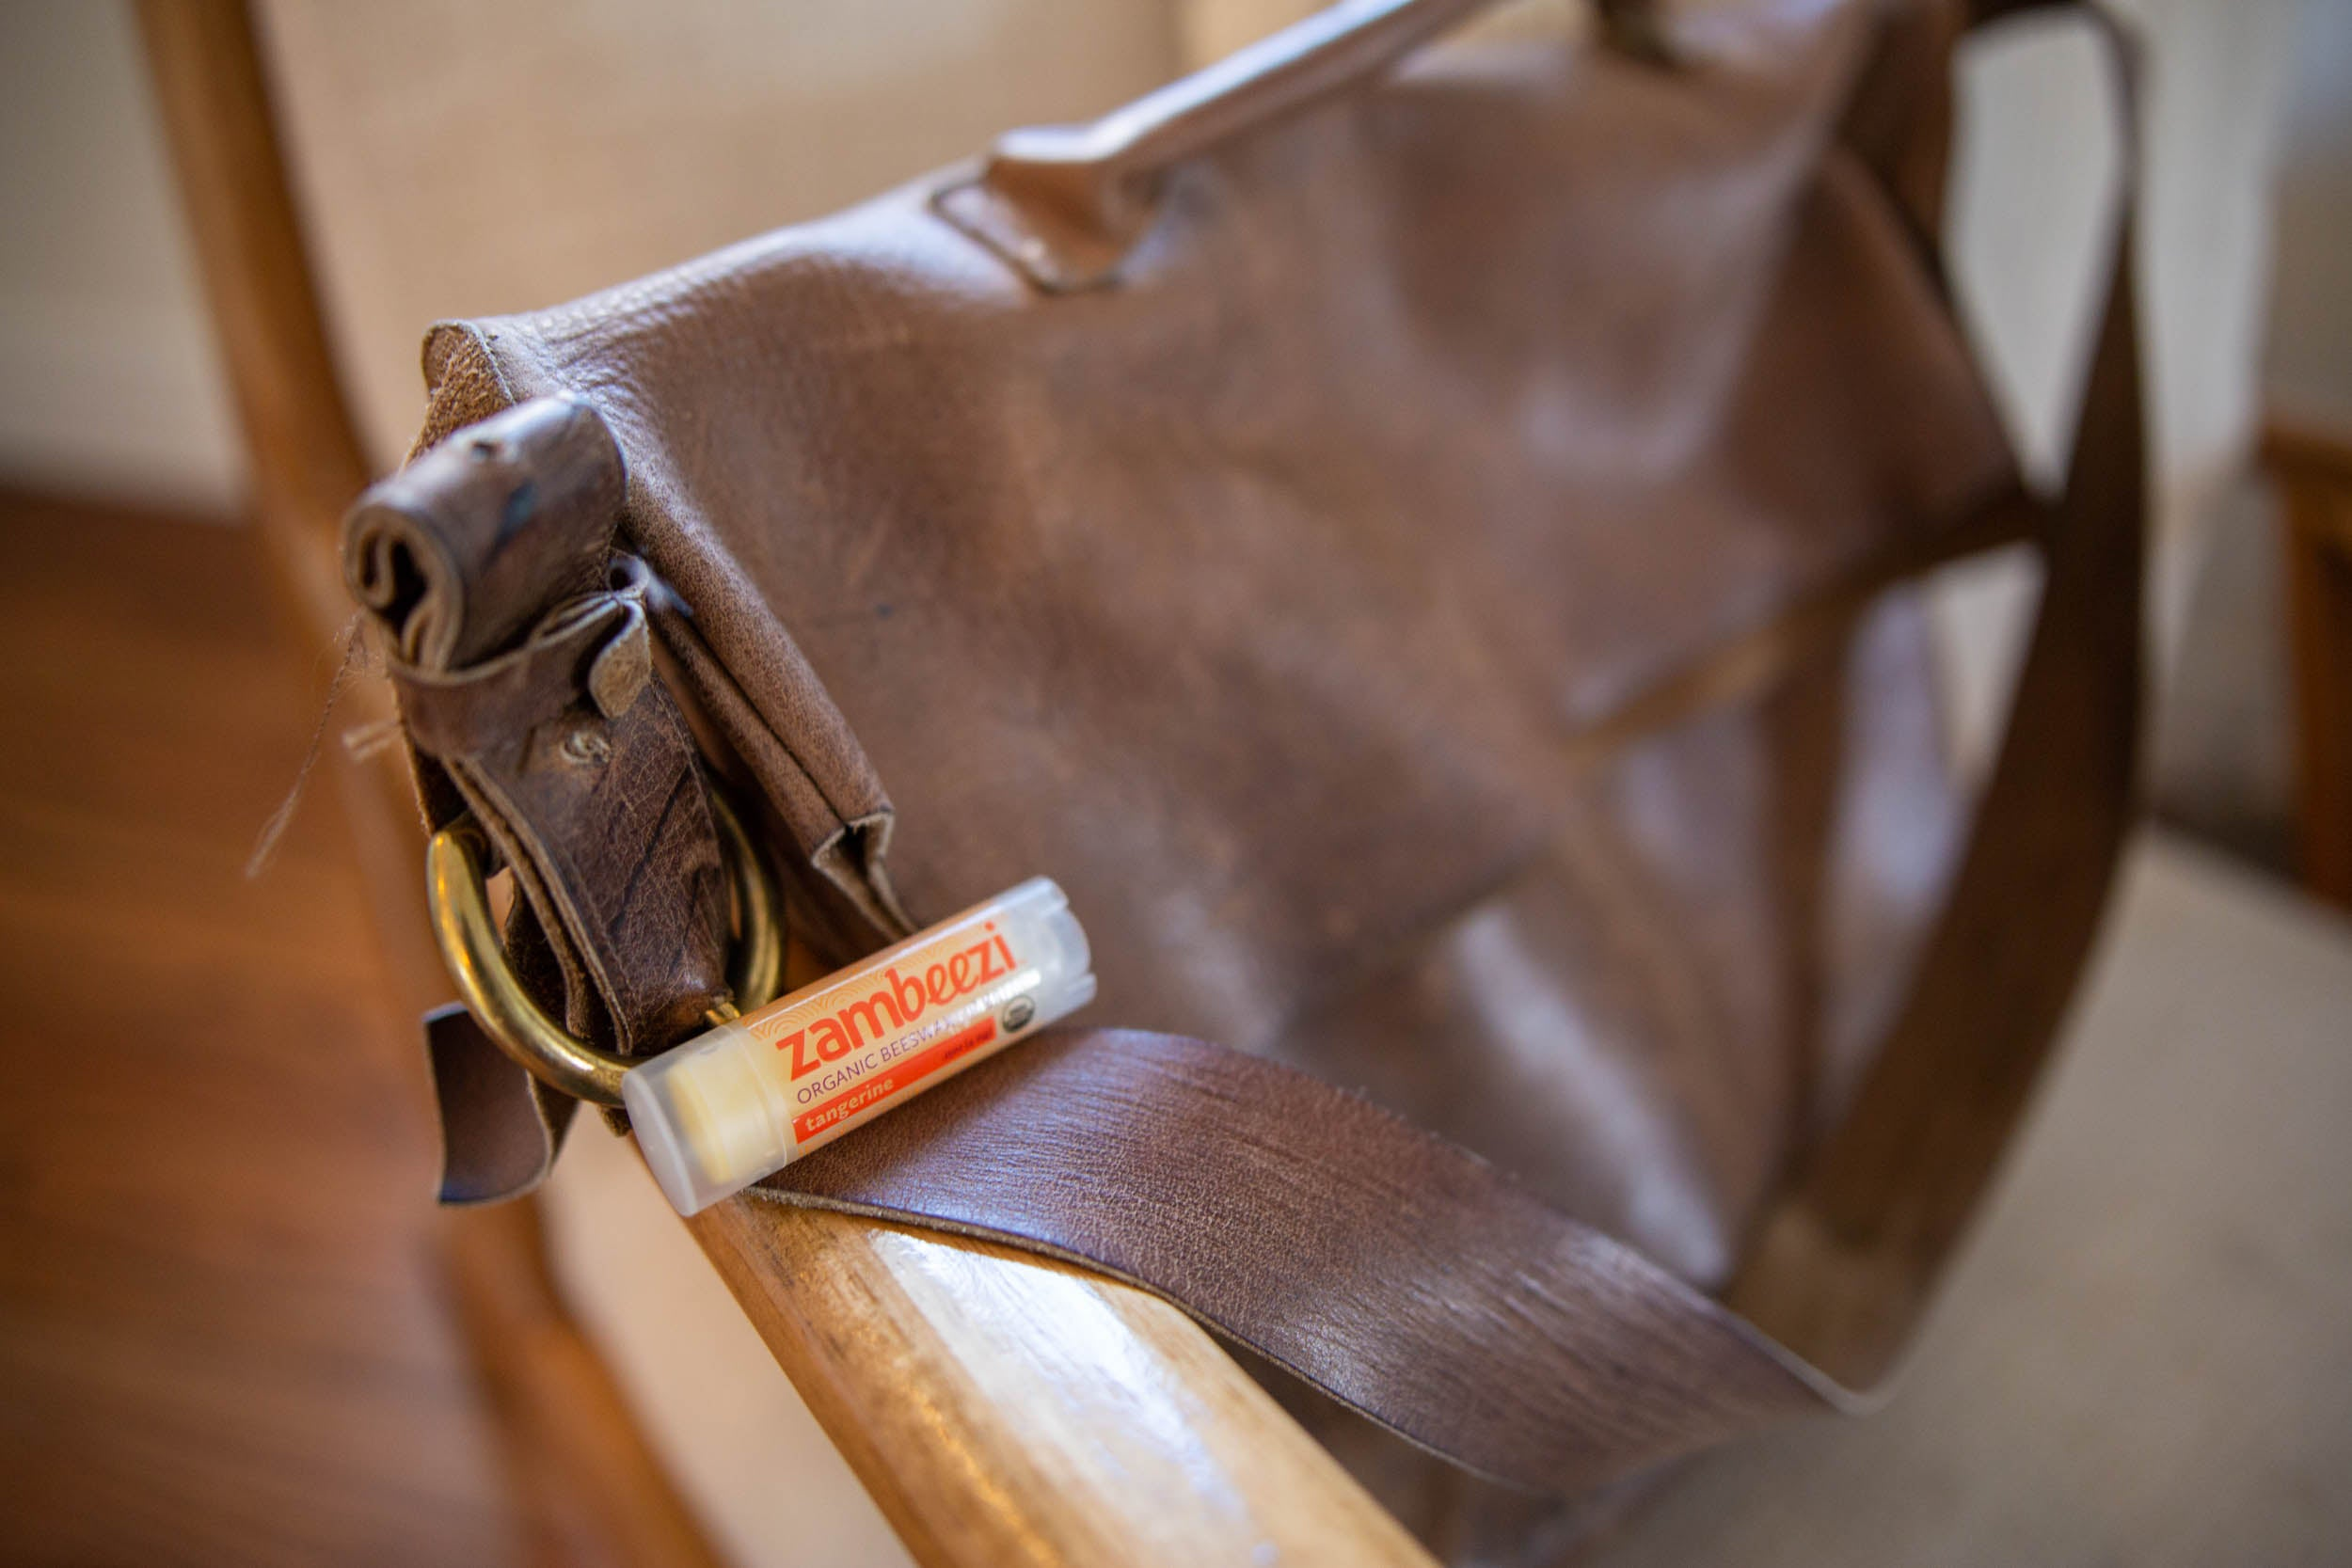 The perfect ethical option for reconditioning leather in a pinch, organic, fair trade lip balm